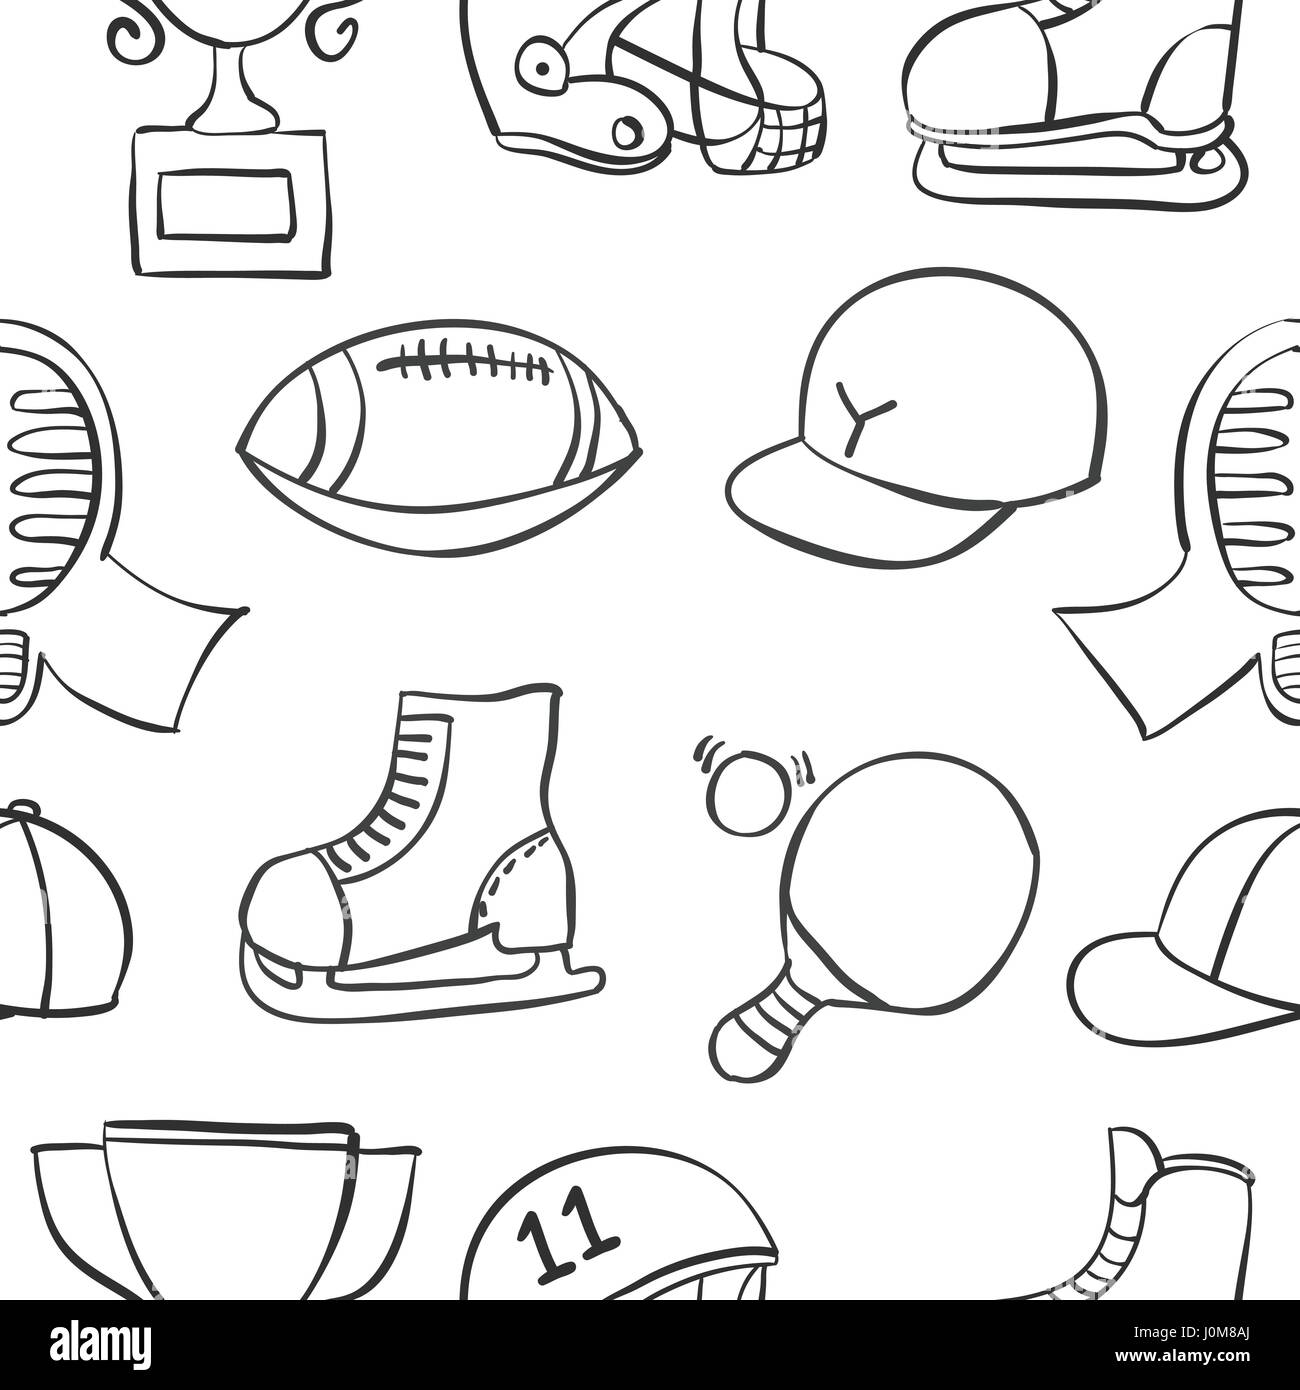 Doodle of sport equipment collection stock - Stock Image